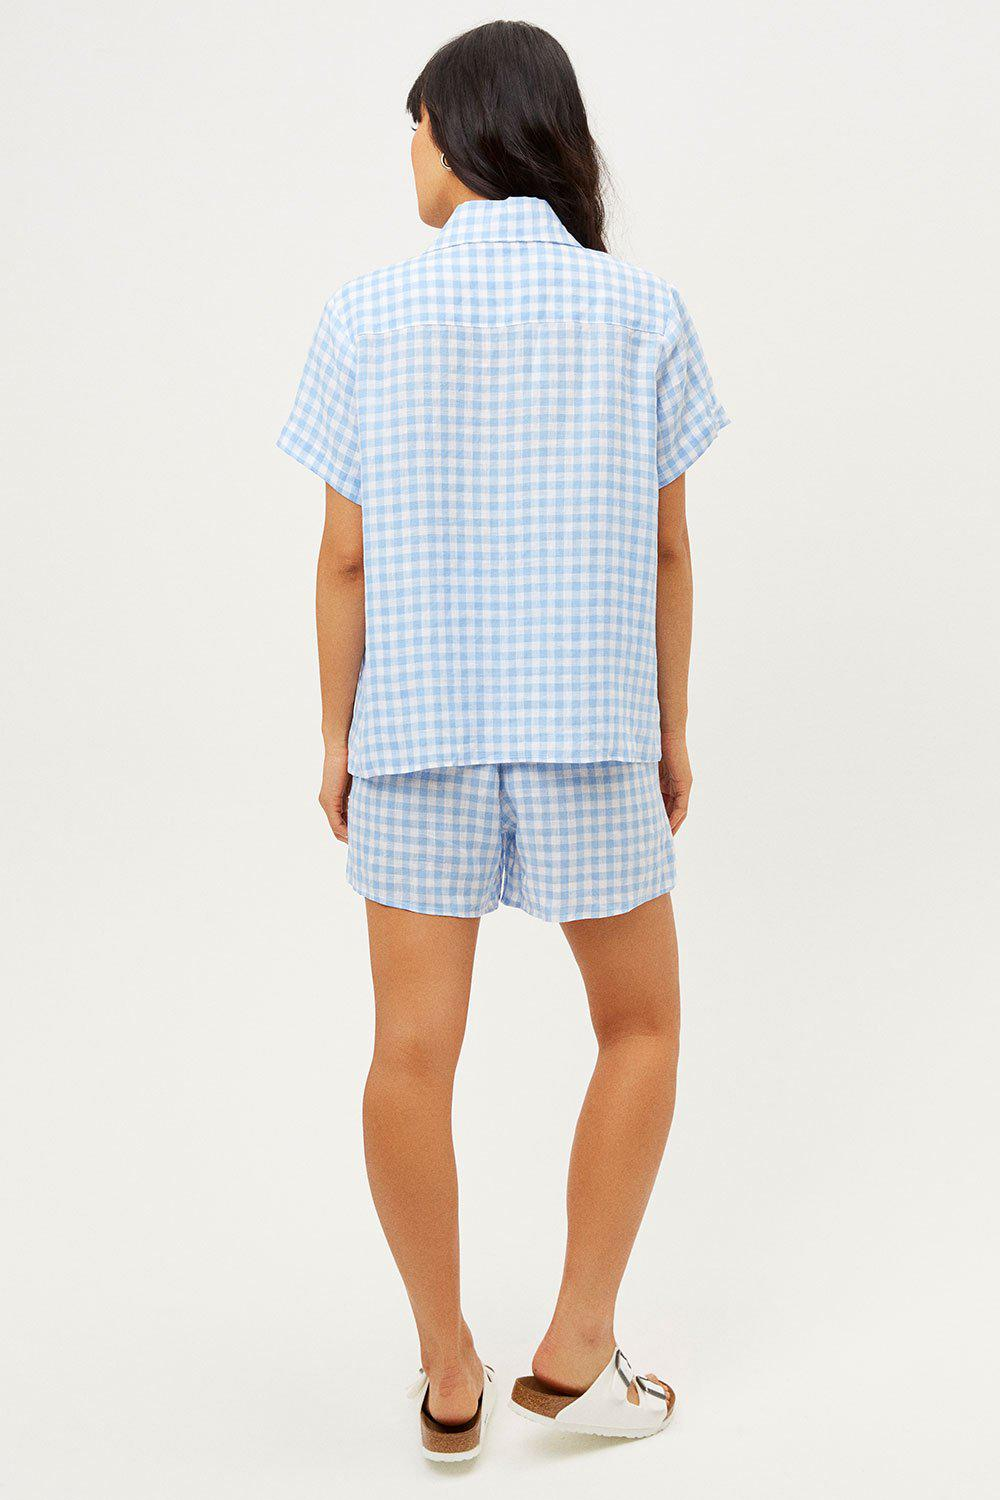 Lou Button Up Top - Bluebell 1